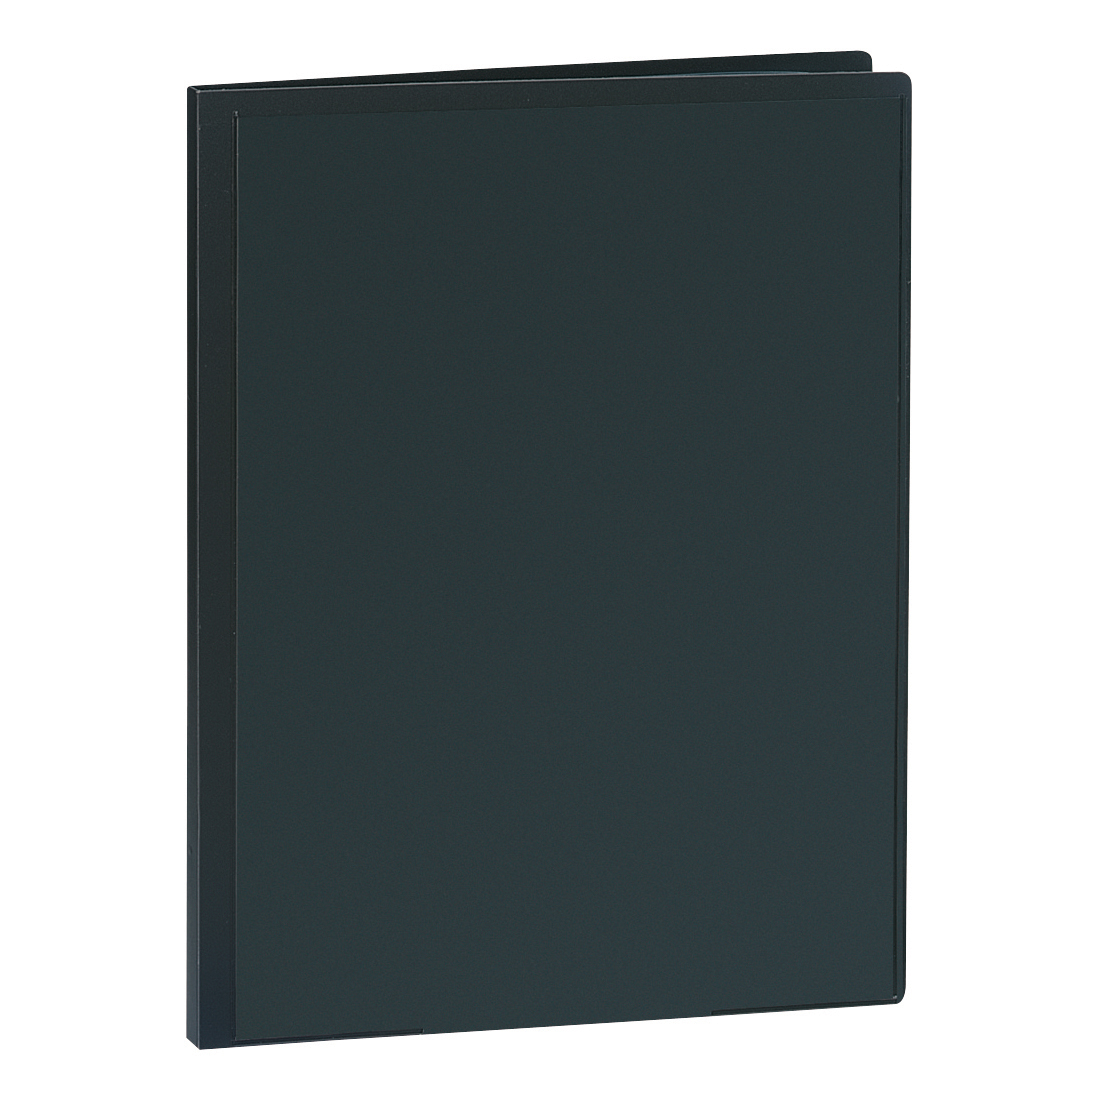 Display Books 5 Star Office Display Book Personalisable Cover Polypropylene 40 Pockets A4 Black